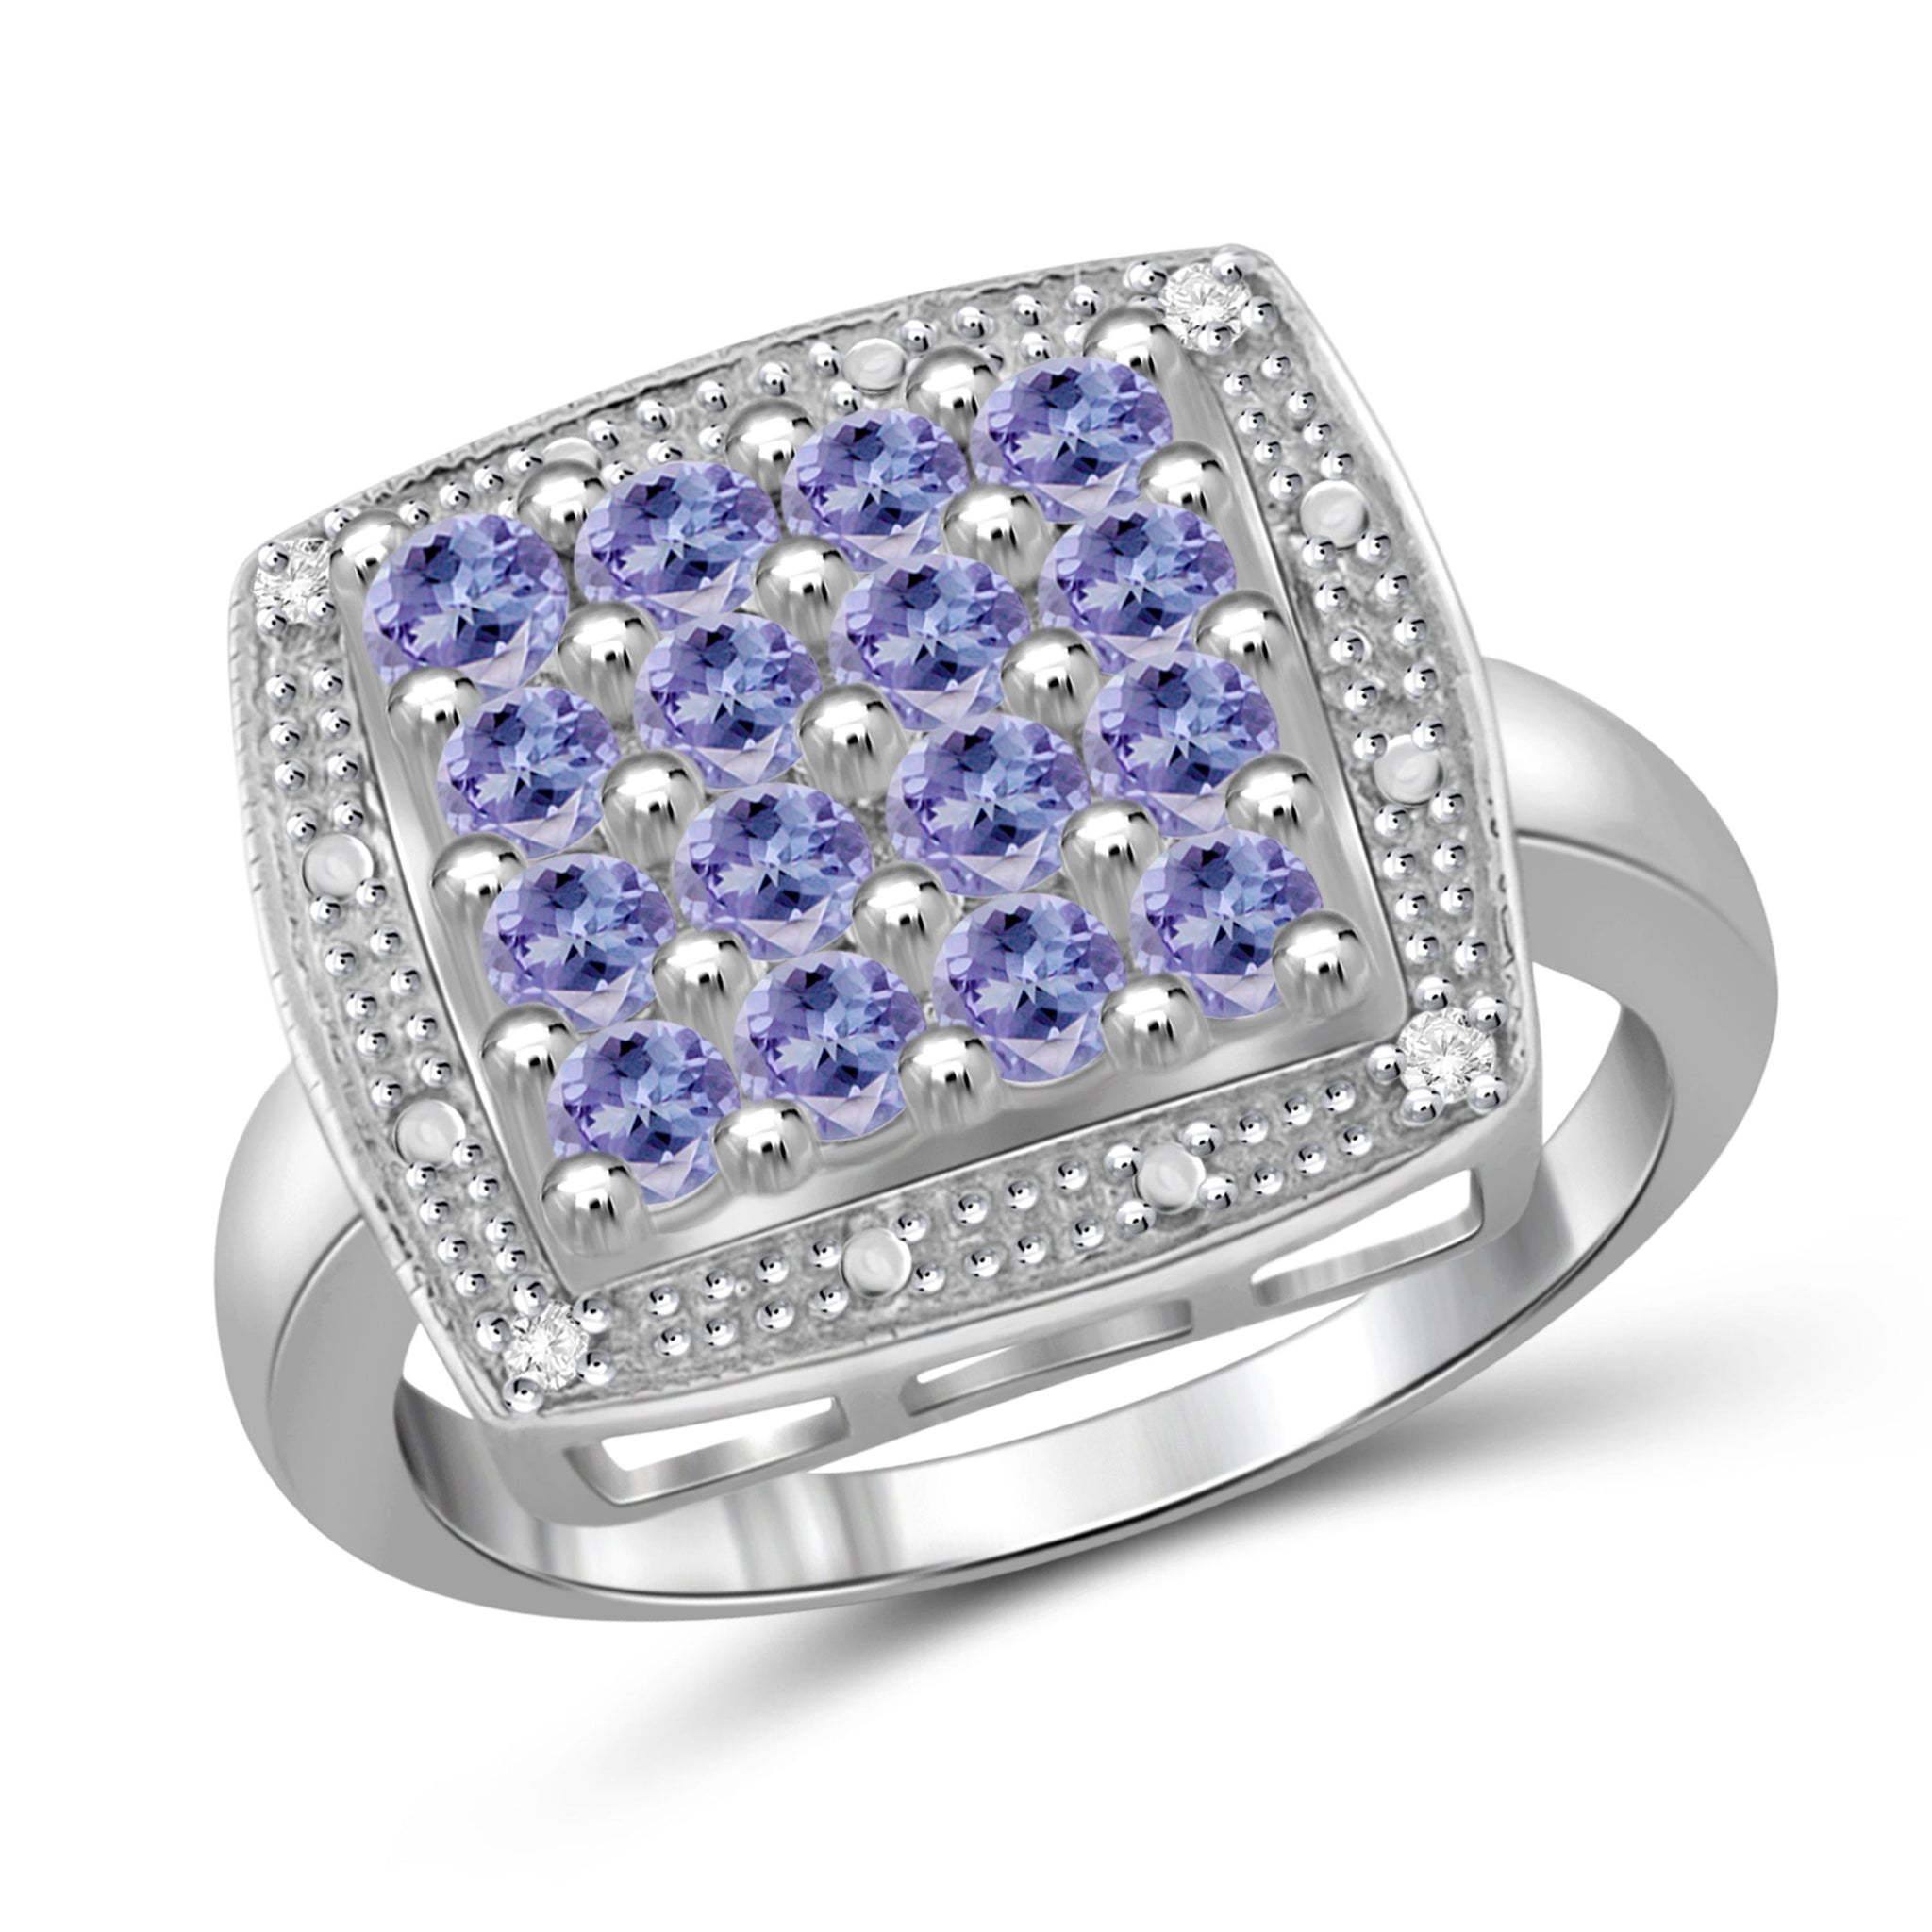 JewelonFire 1 Carat T.G.W. Tanzanite and White Diamond Accent Sterling Silver Ring- Assorted Colors